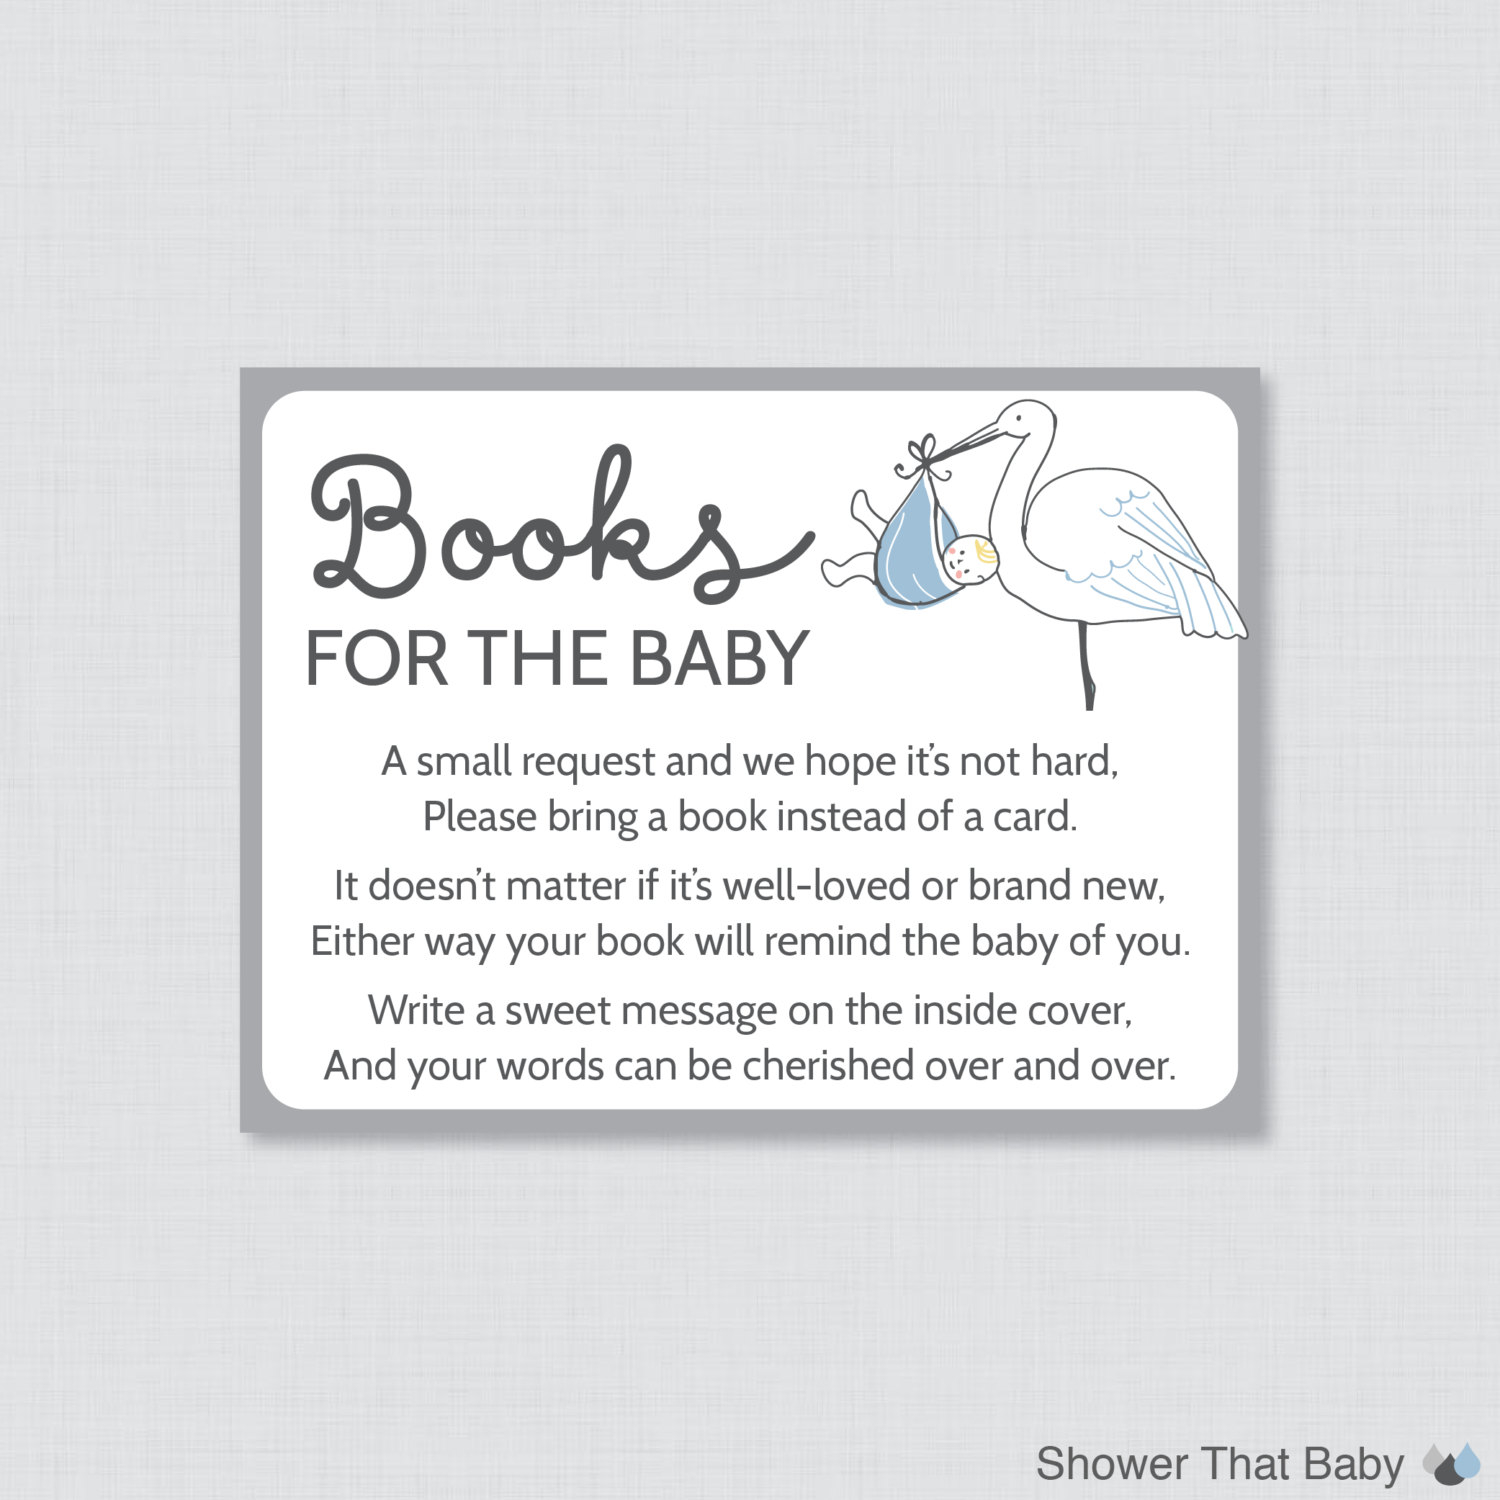 Stork Ba Shower Bring A Book Instead Of A Card Invitation throughout dimensions 1500 X 1500